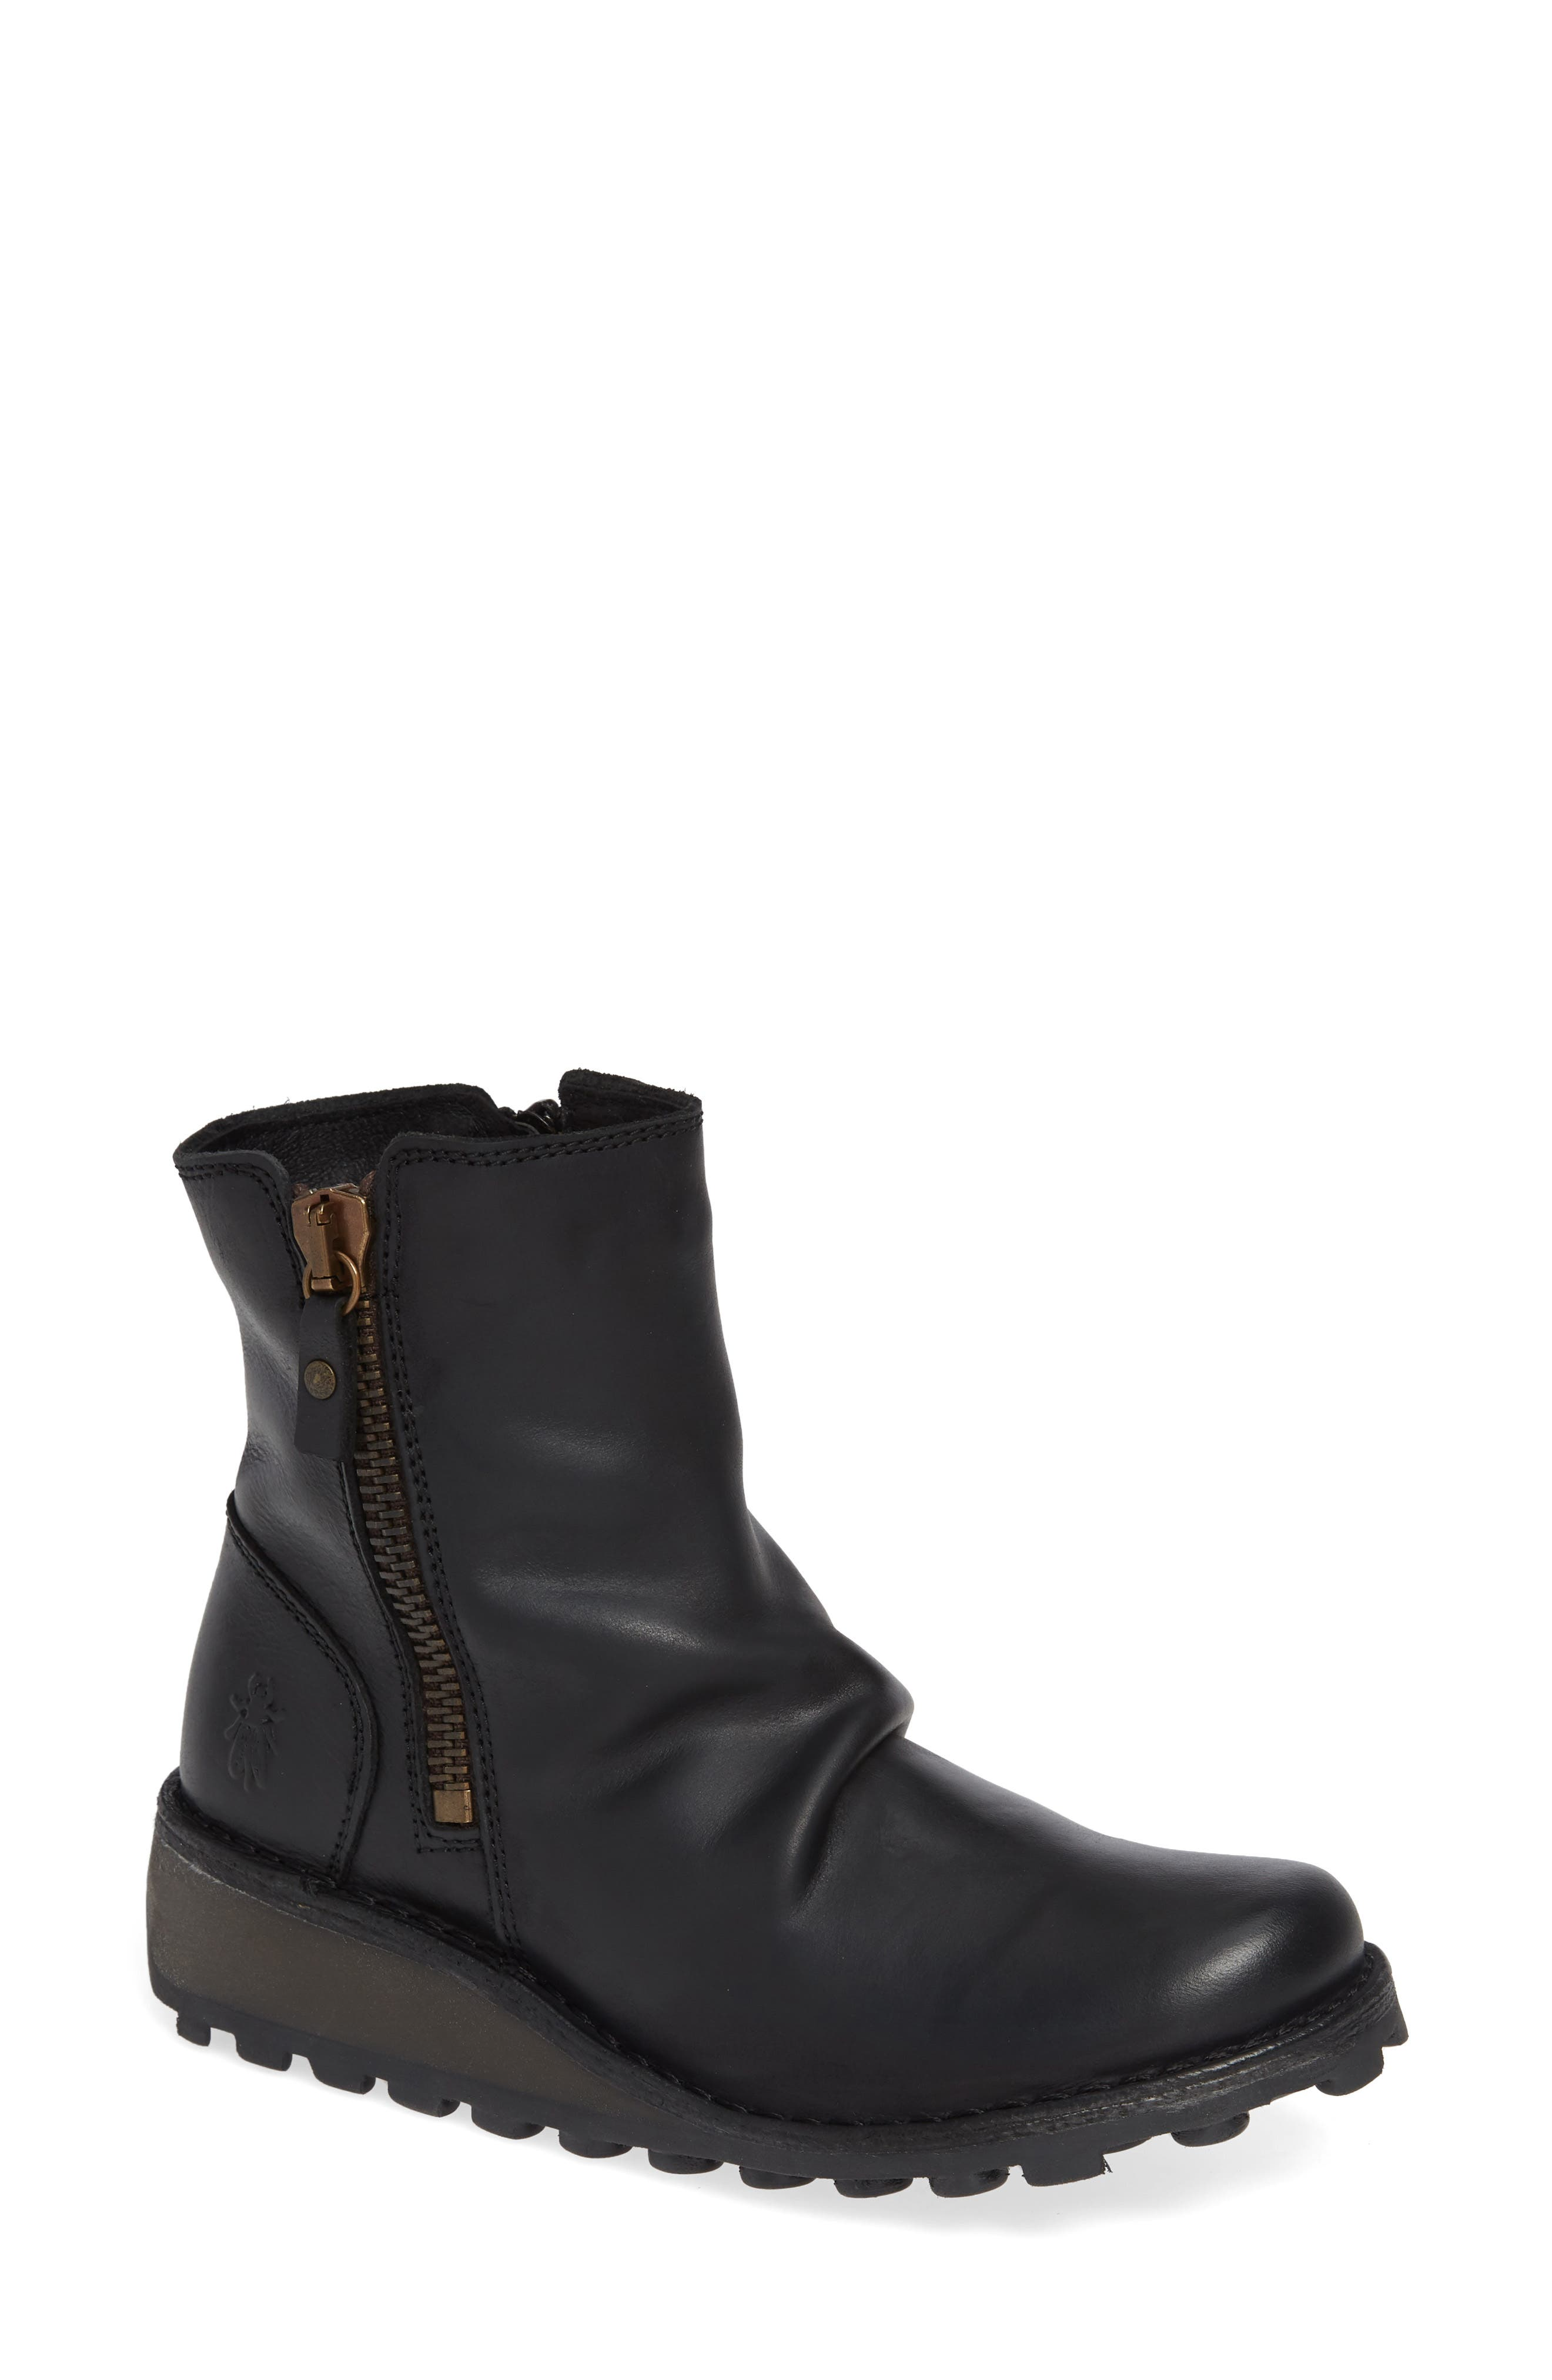 Mong Boot,                         Main,                         color, Black Leather